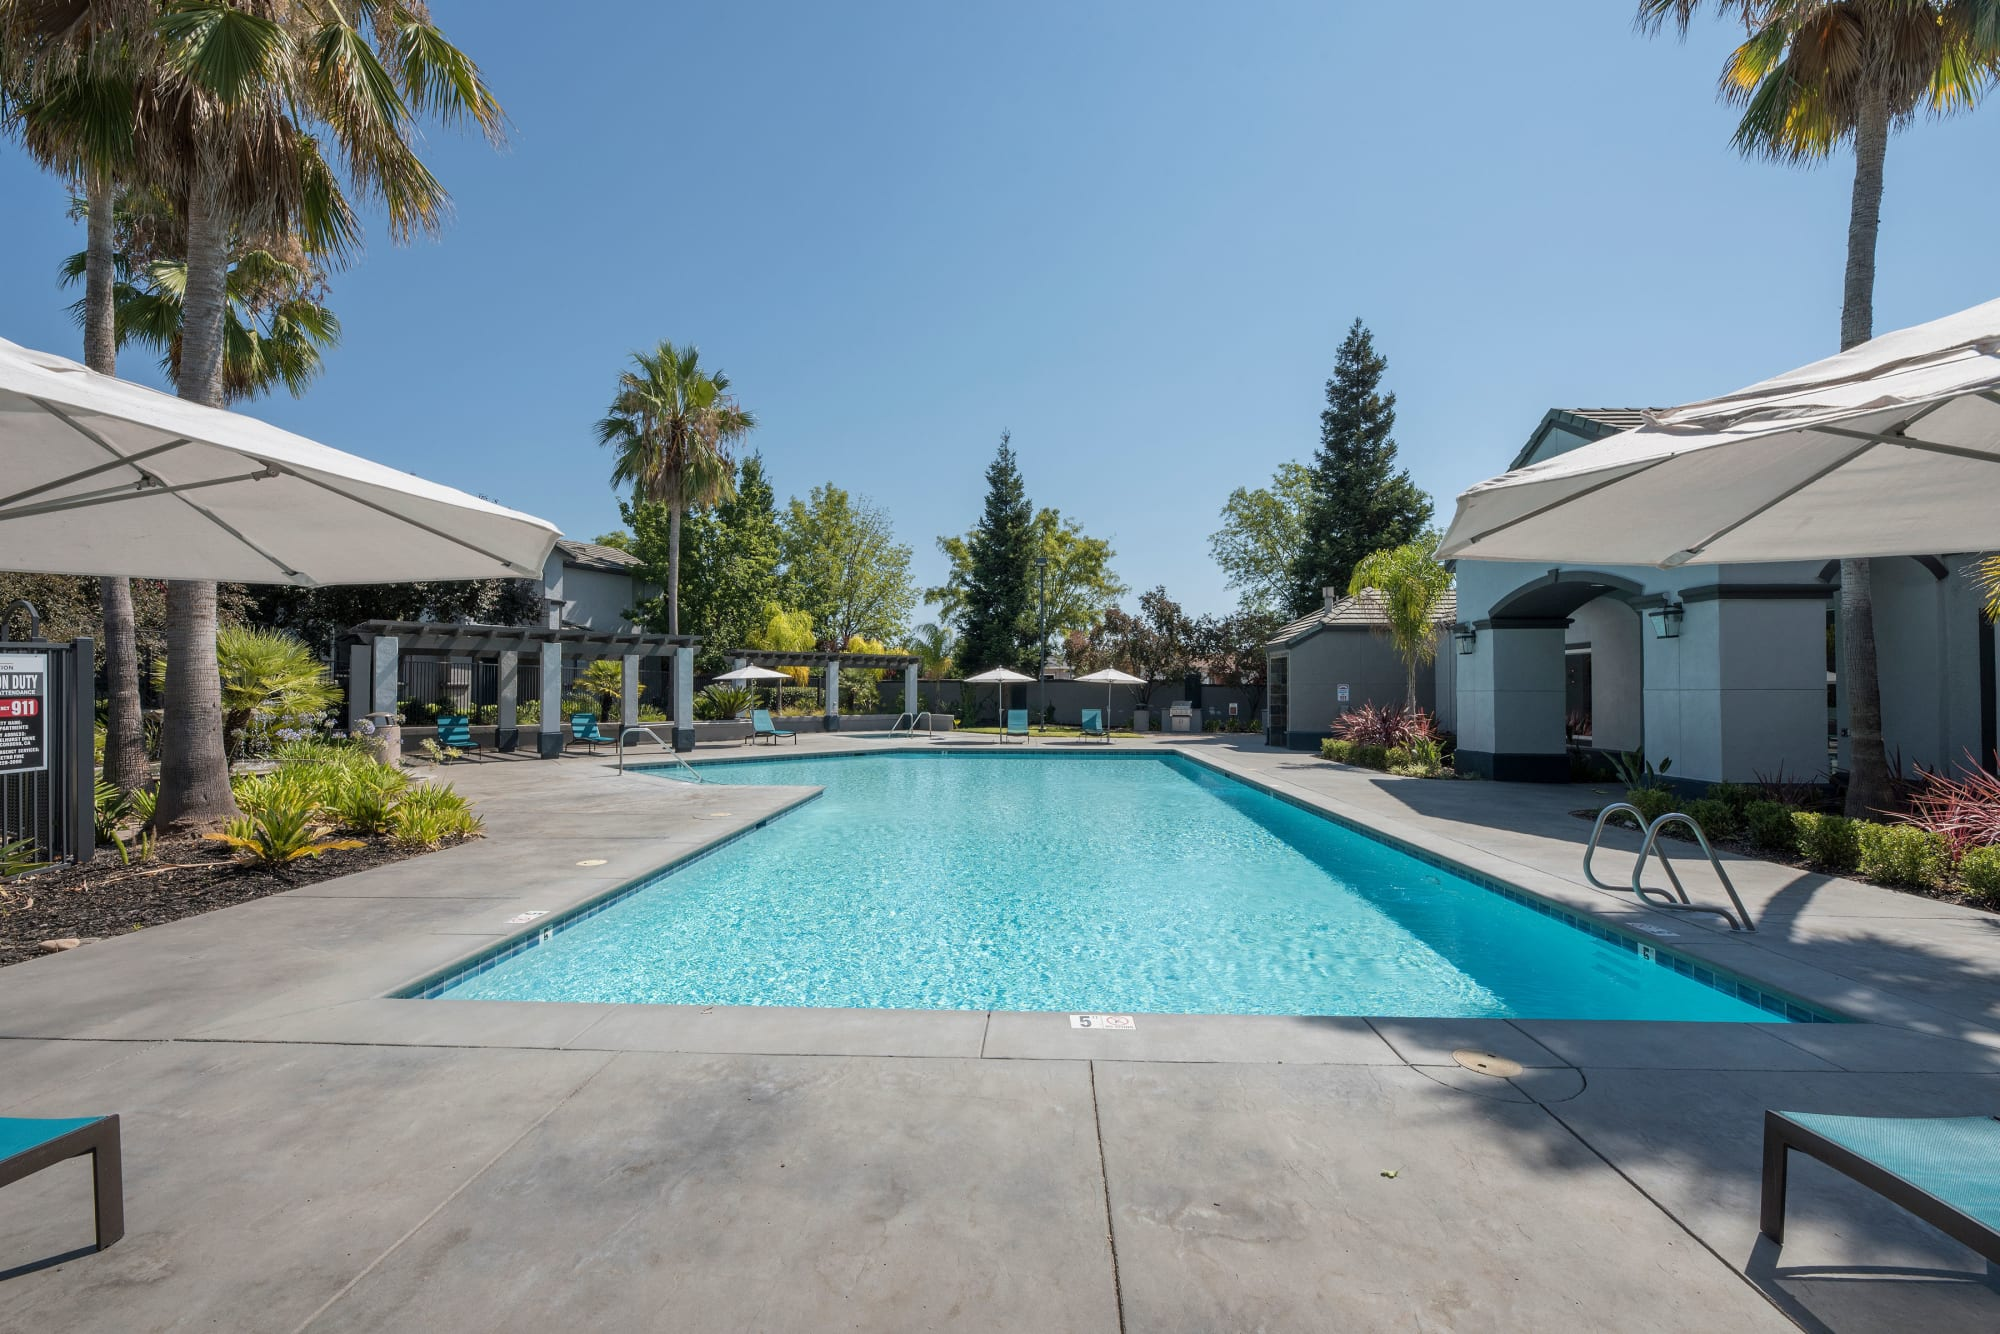 Swimming pool and patio seating at Avion Apartments in Rancho Cordova, California